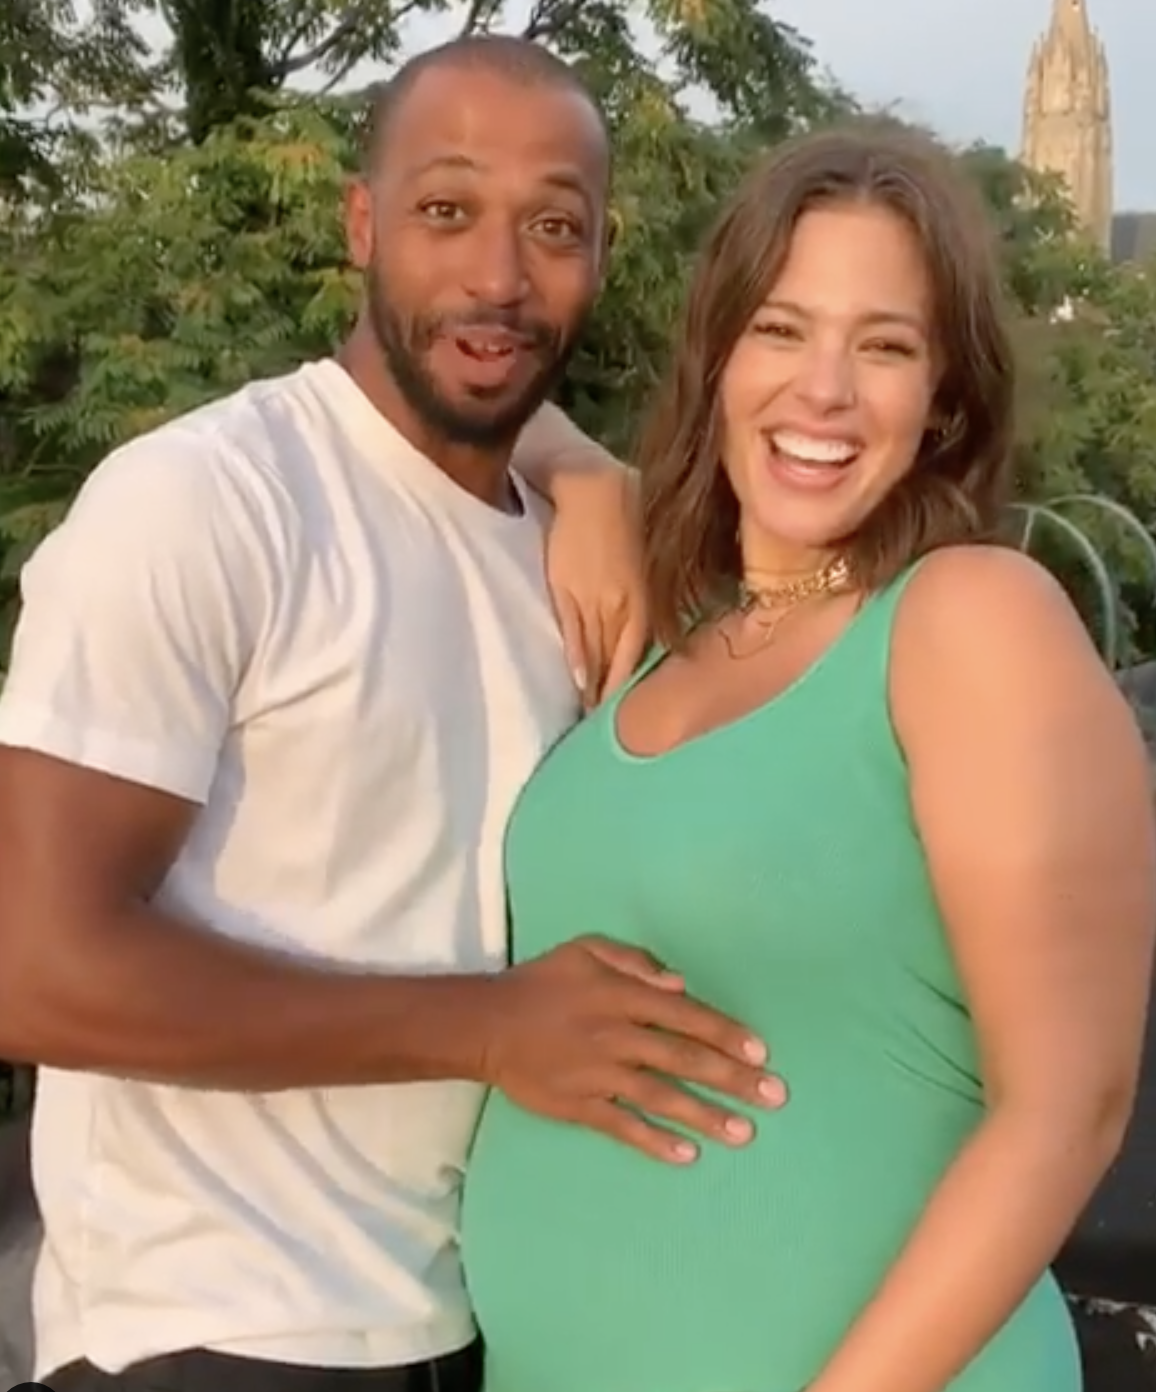 Celebs expecting babies, announced pregnancies in 2019